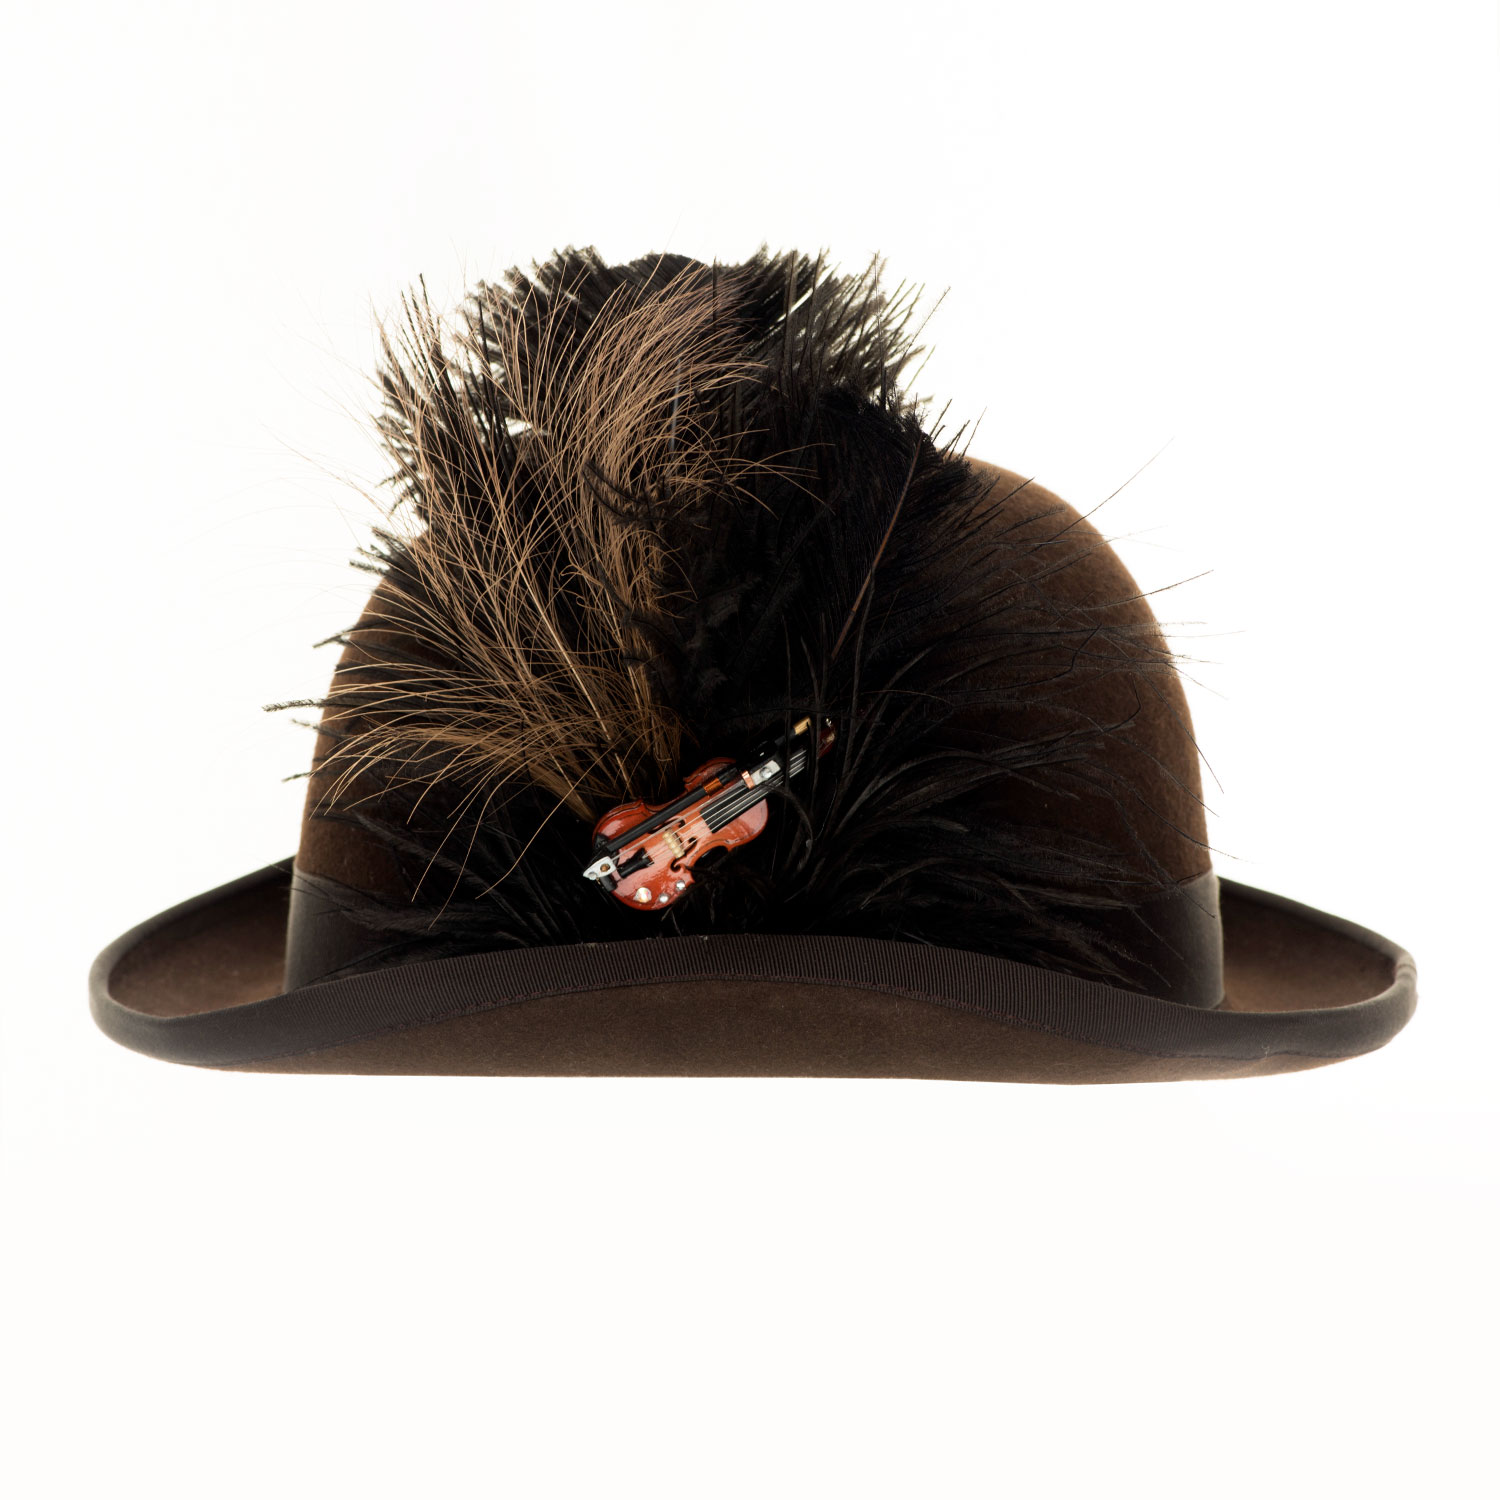 BEETHOVEN BOWLER HAT WITH VIOLIN